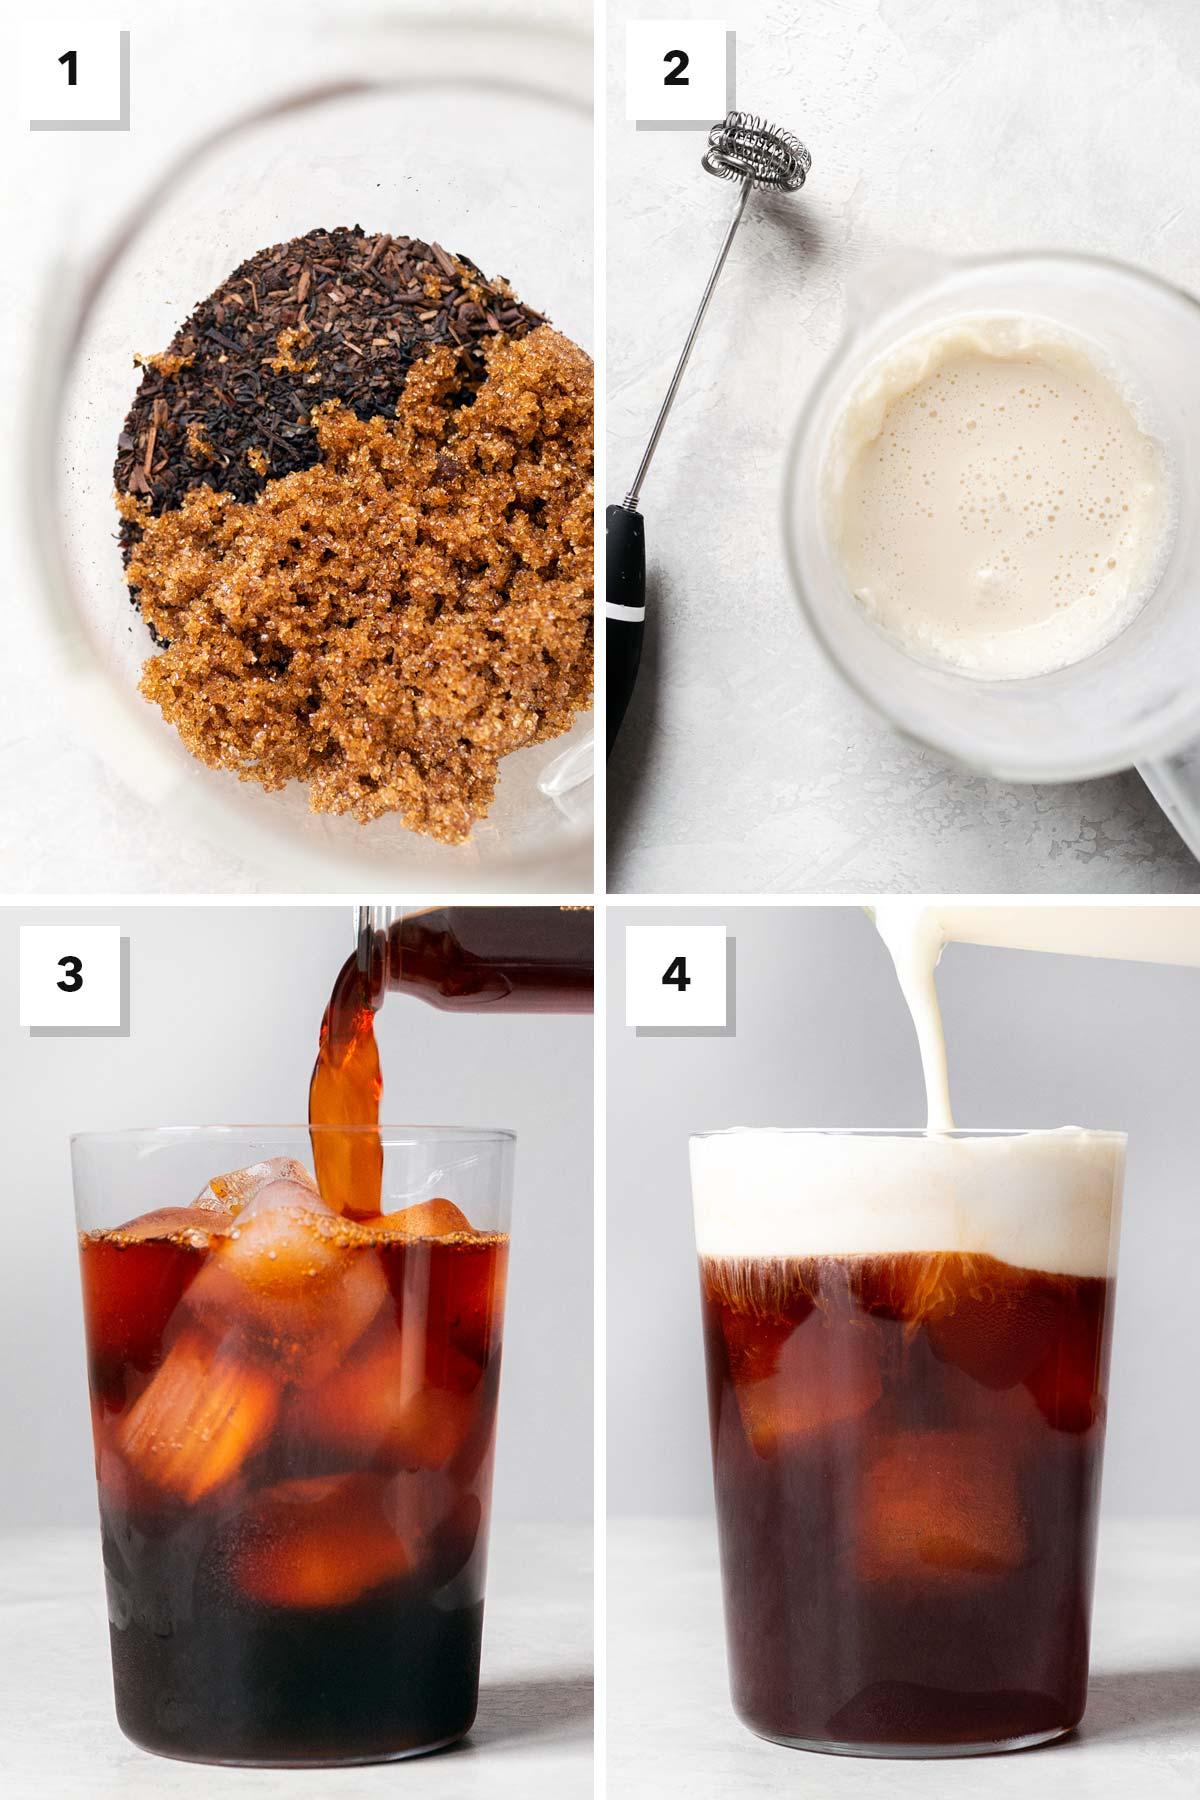 Four photo collage showing steps to make Thai Iced Tea.